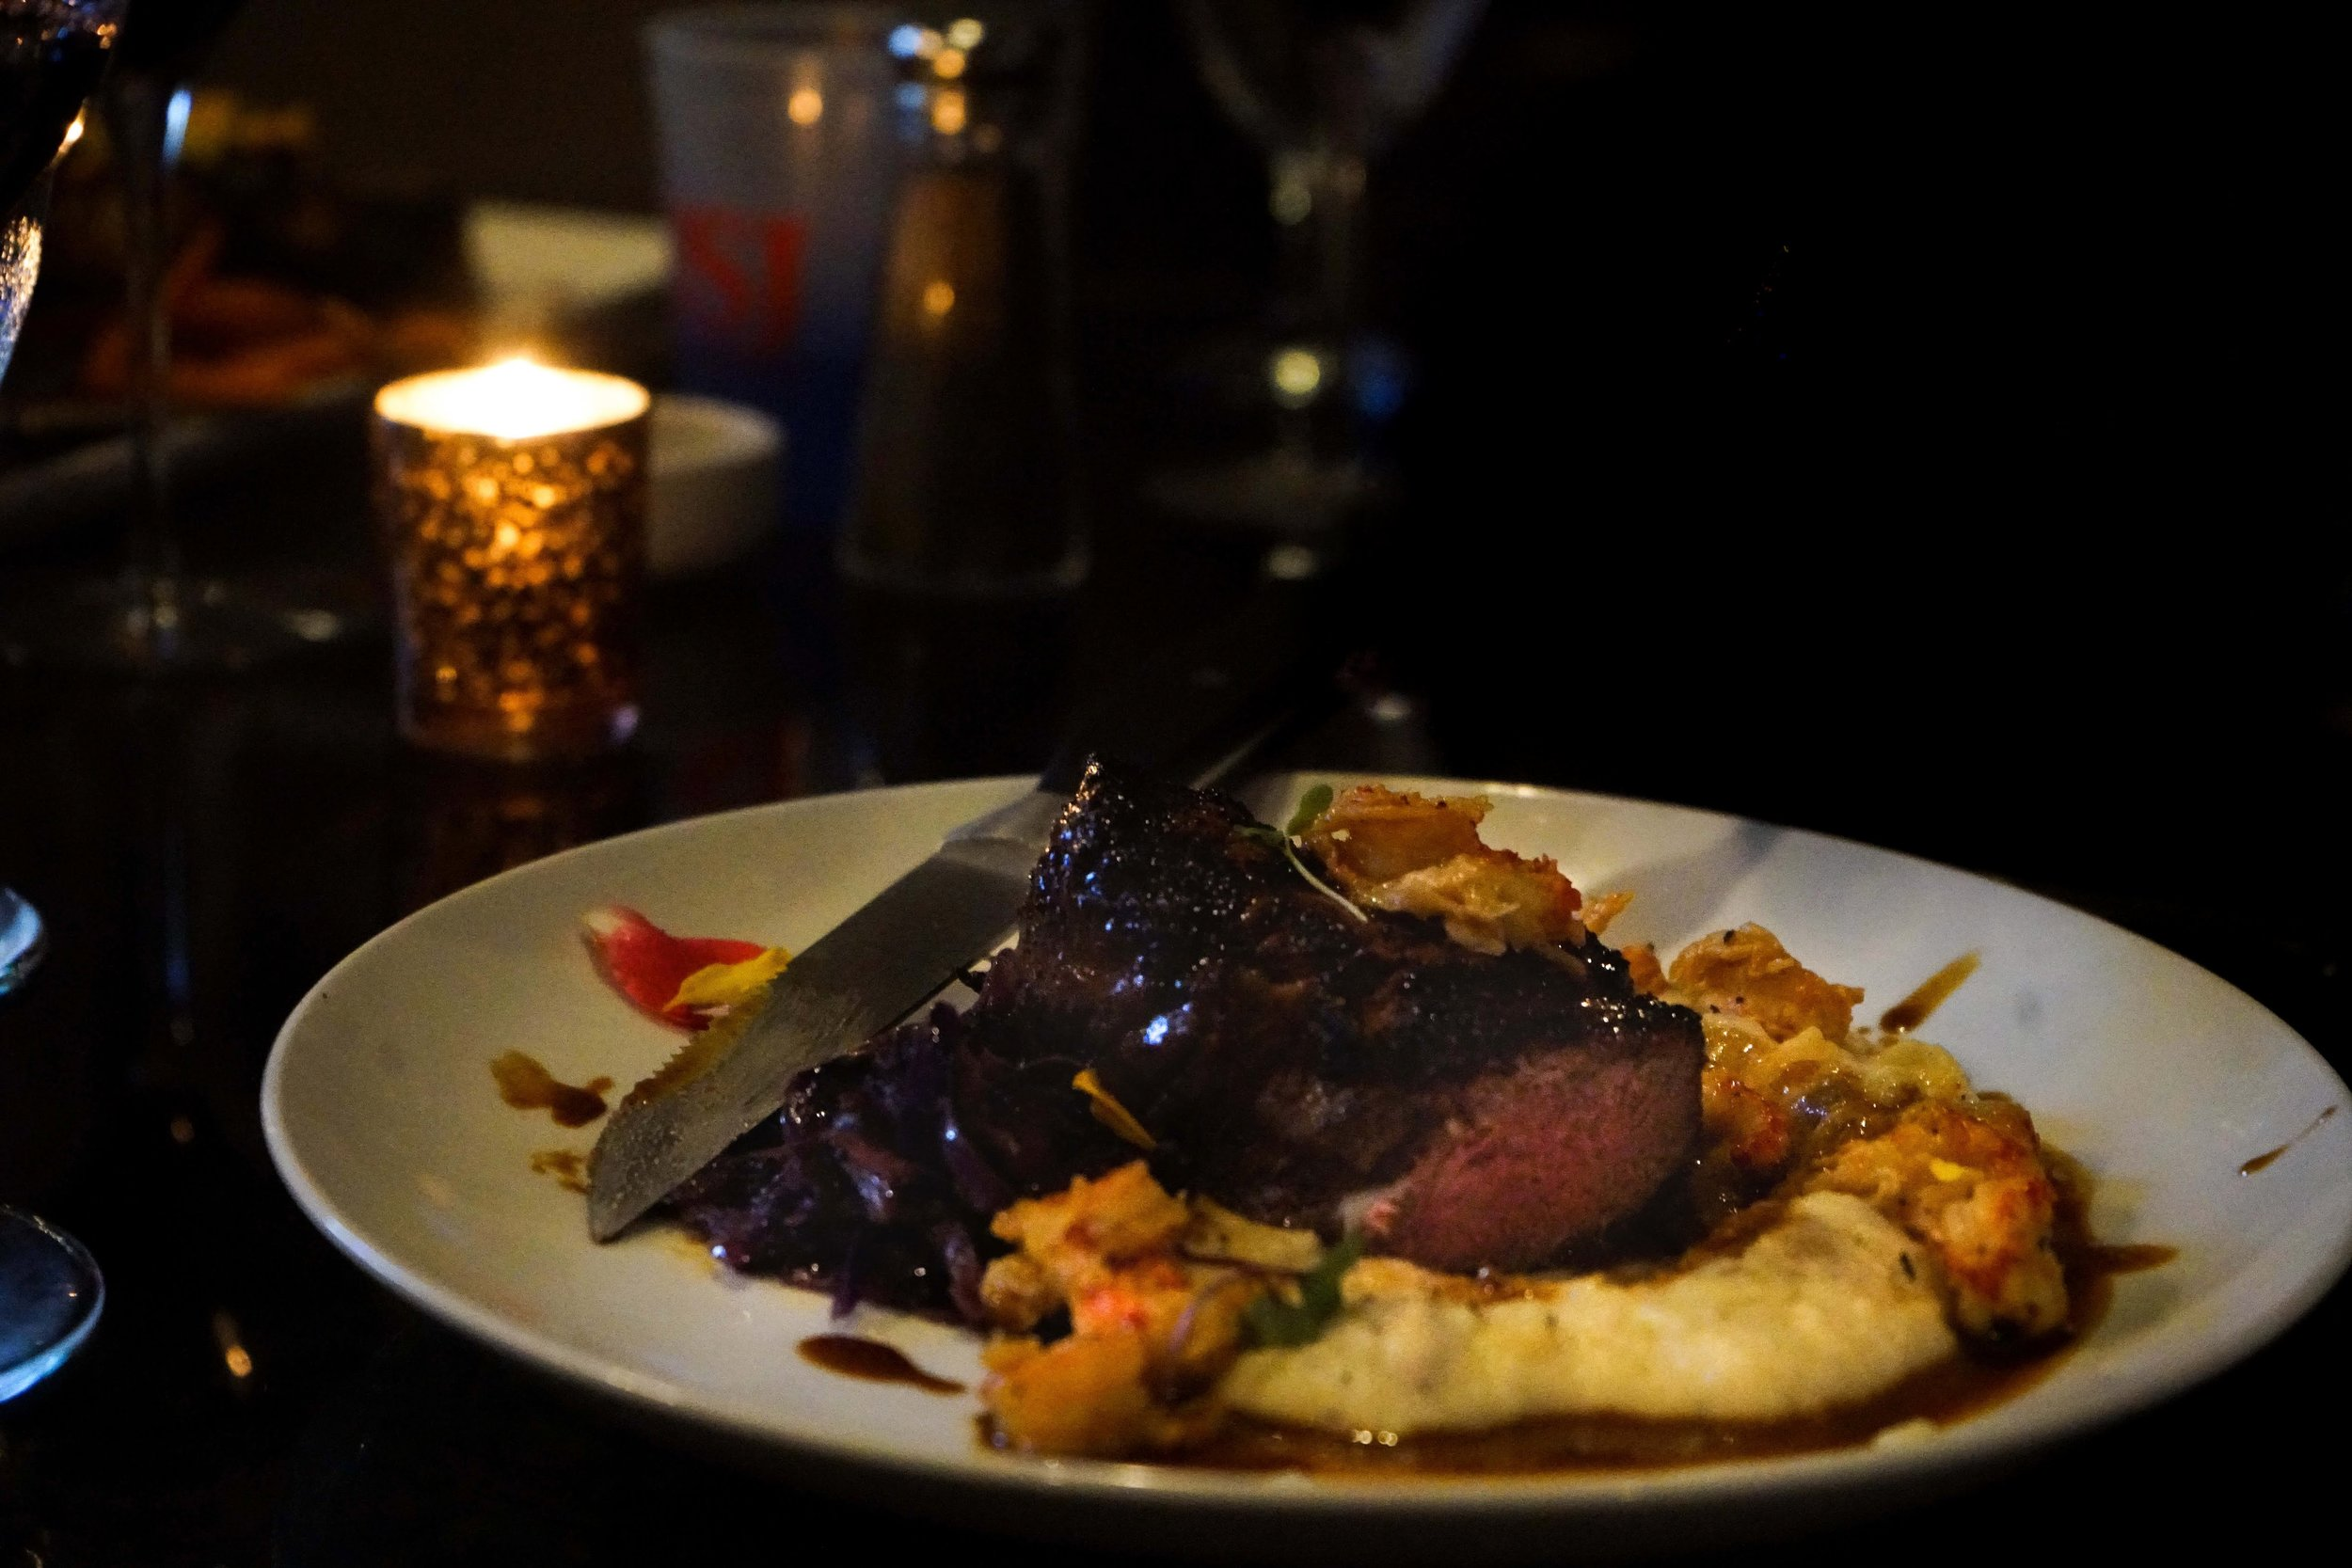 Prime Cut Fillet with Butter Poached Crawfish, Demi-Glace, Sautéed Purple Cabbage, and Mashed Potatoes